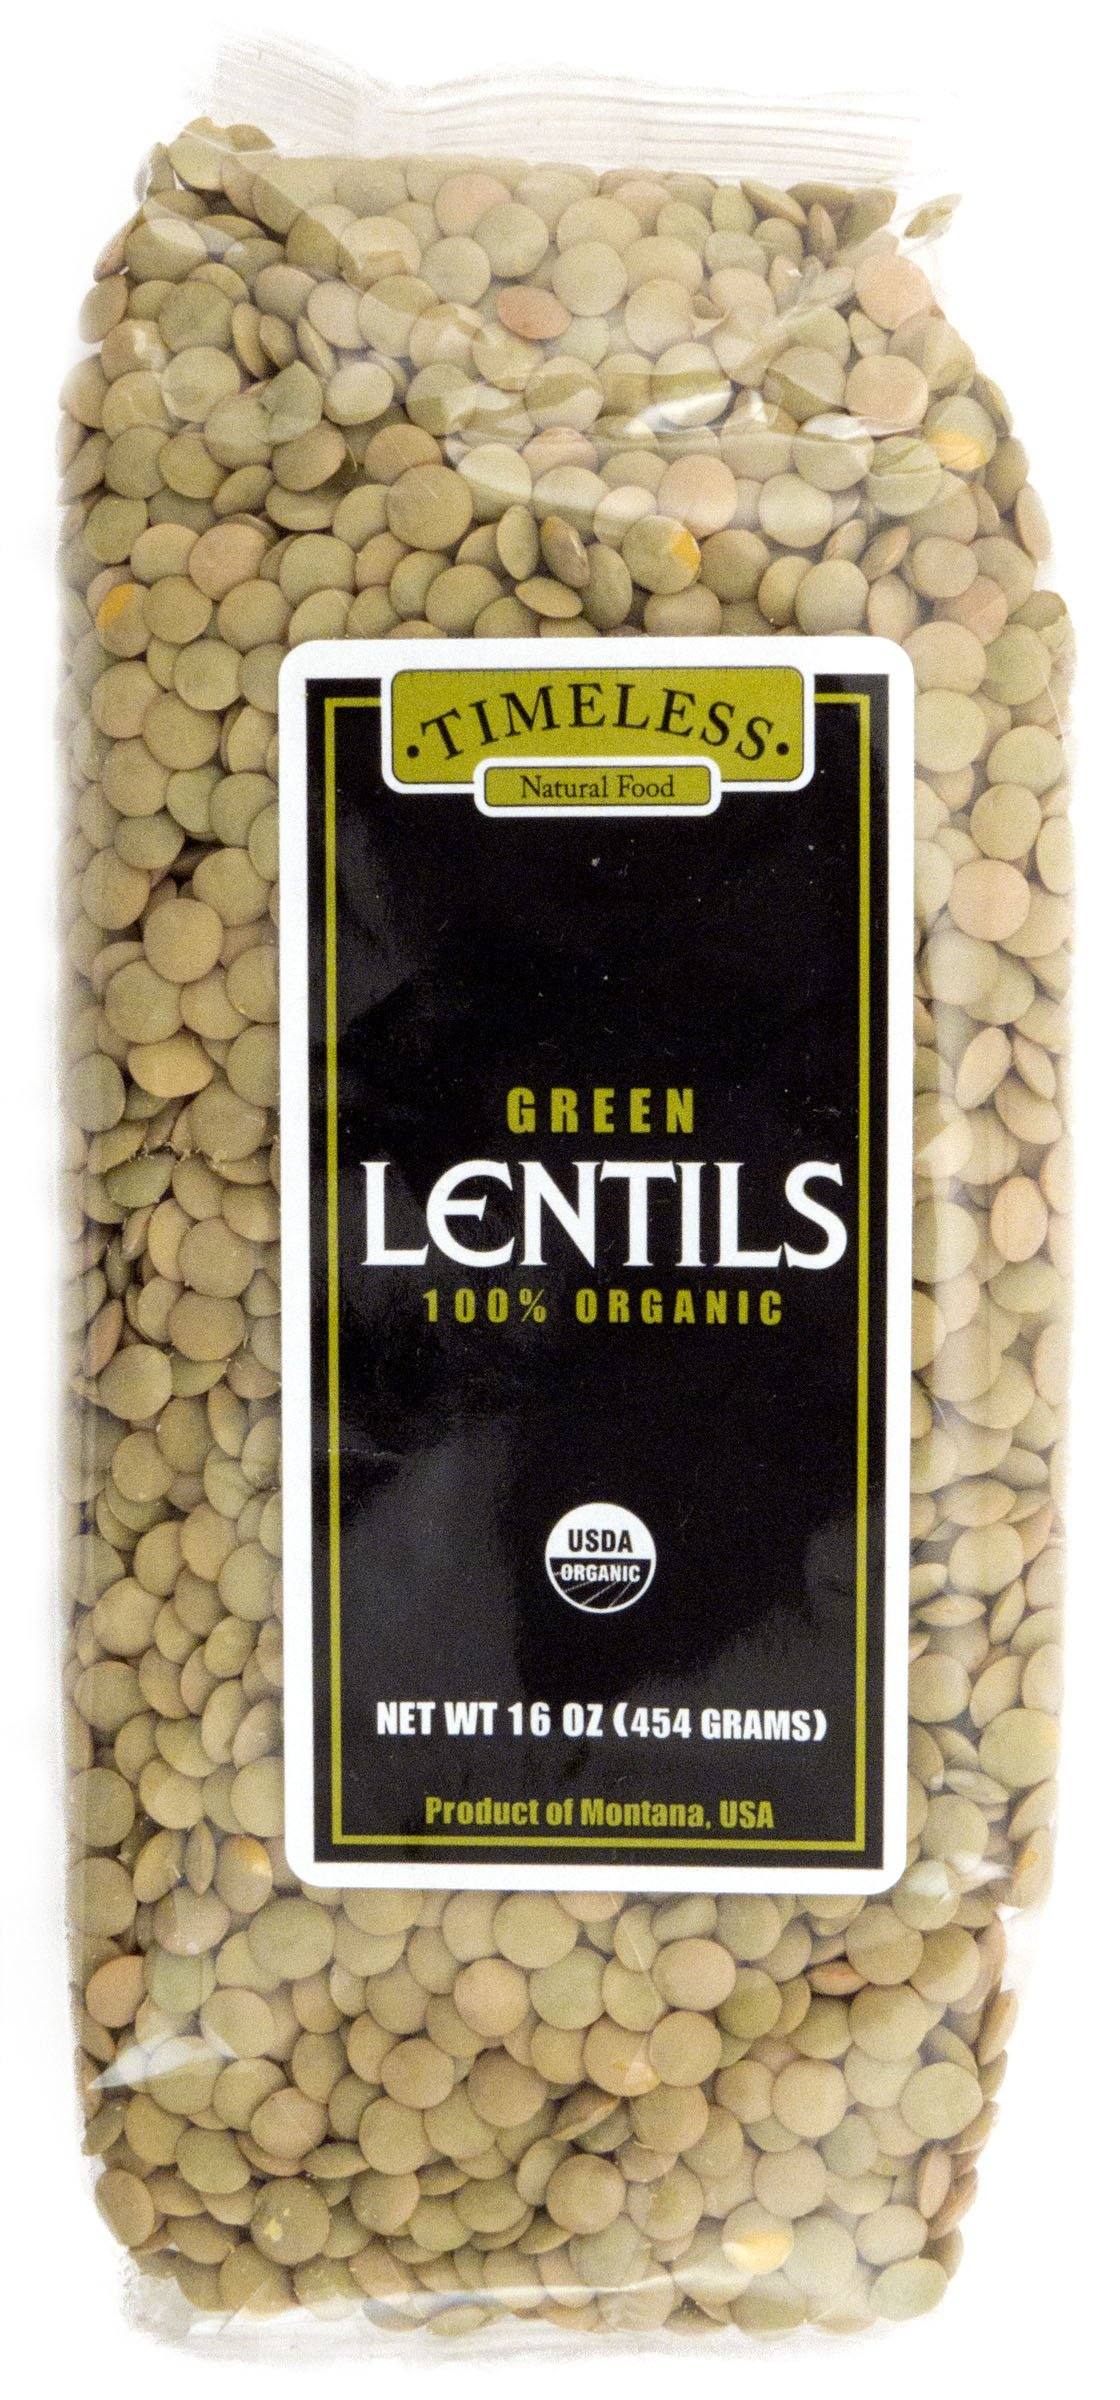 Timeless Natural Food USDA Certified Organic Green Lentils 16 oz